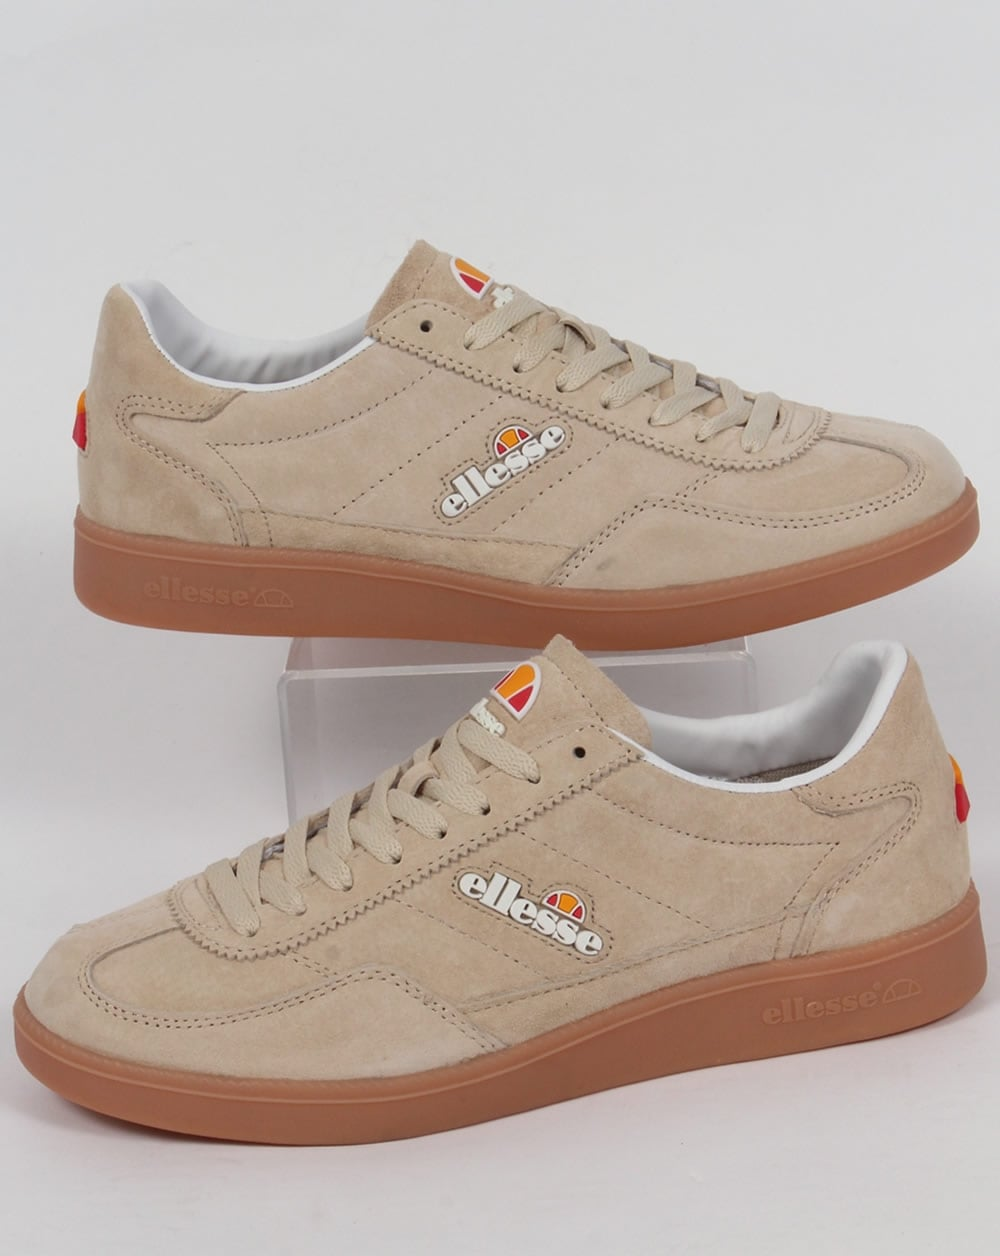 The official Clarks Outlet - discounted shoes and bags for womens, mens and kids. Free delivery over £60 and free returns.